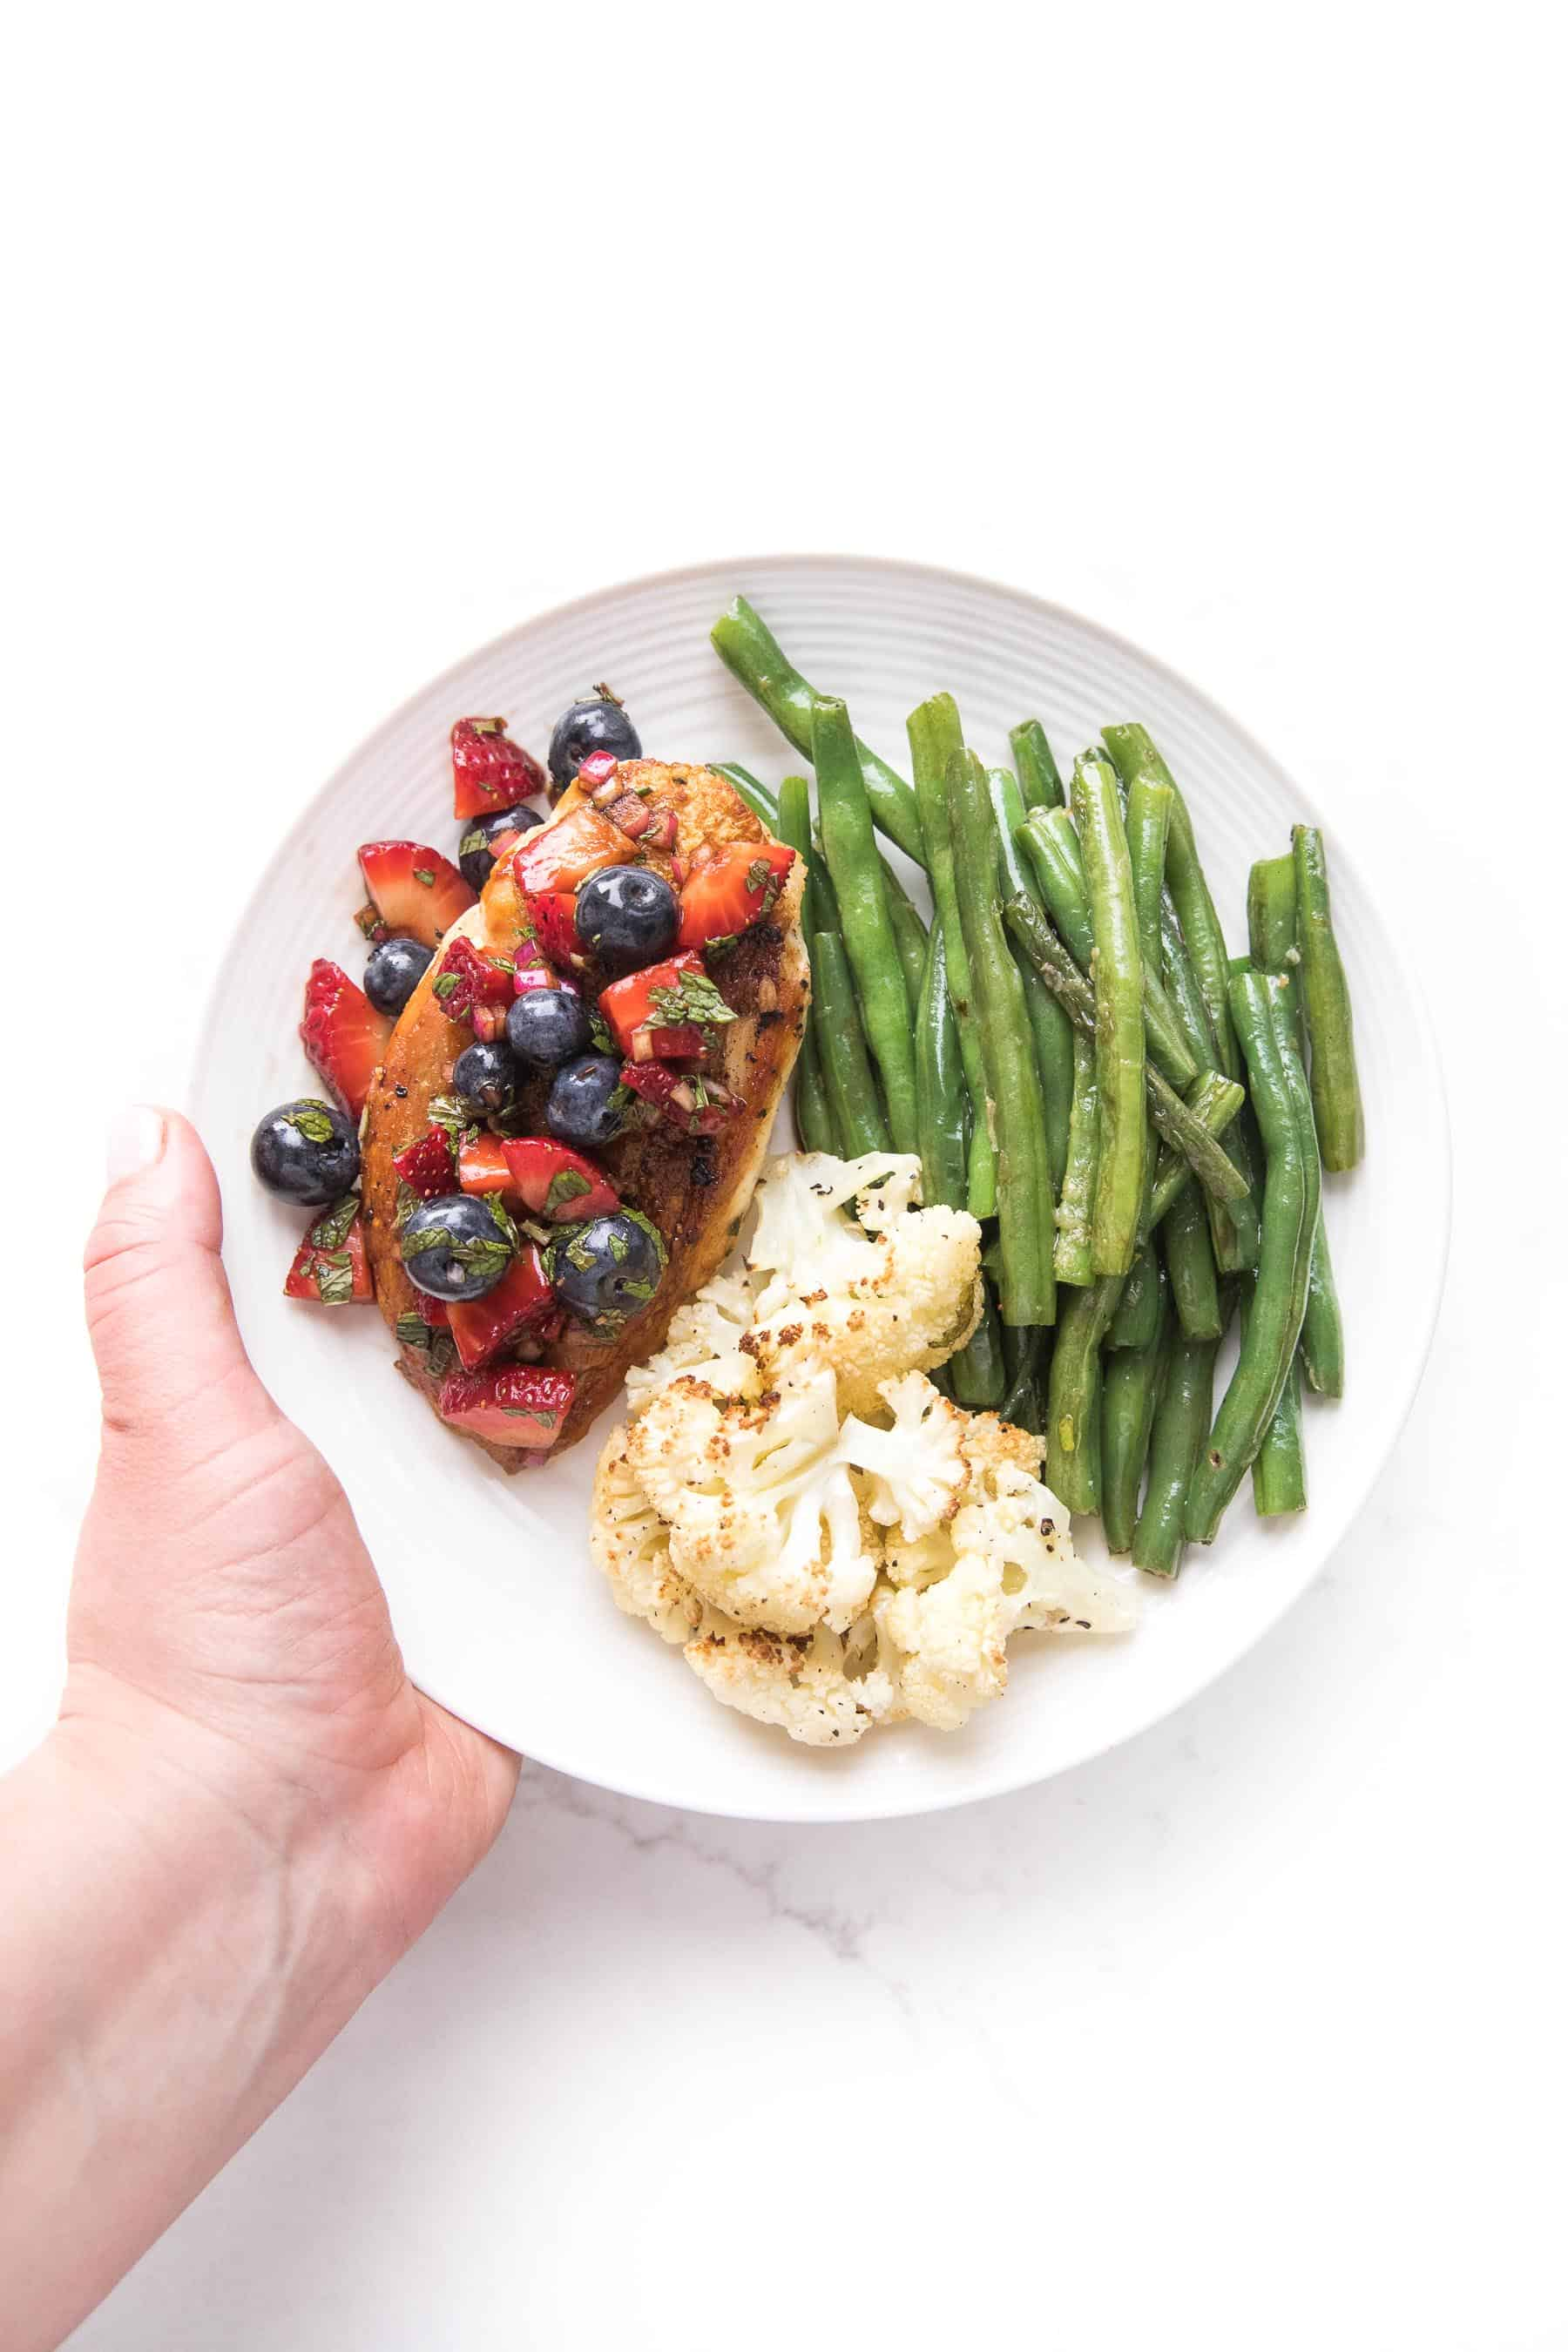 a hand holding chicken topped with blueberry and strawberry salsa on a white plate and a white background